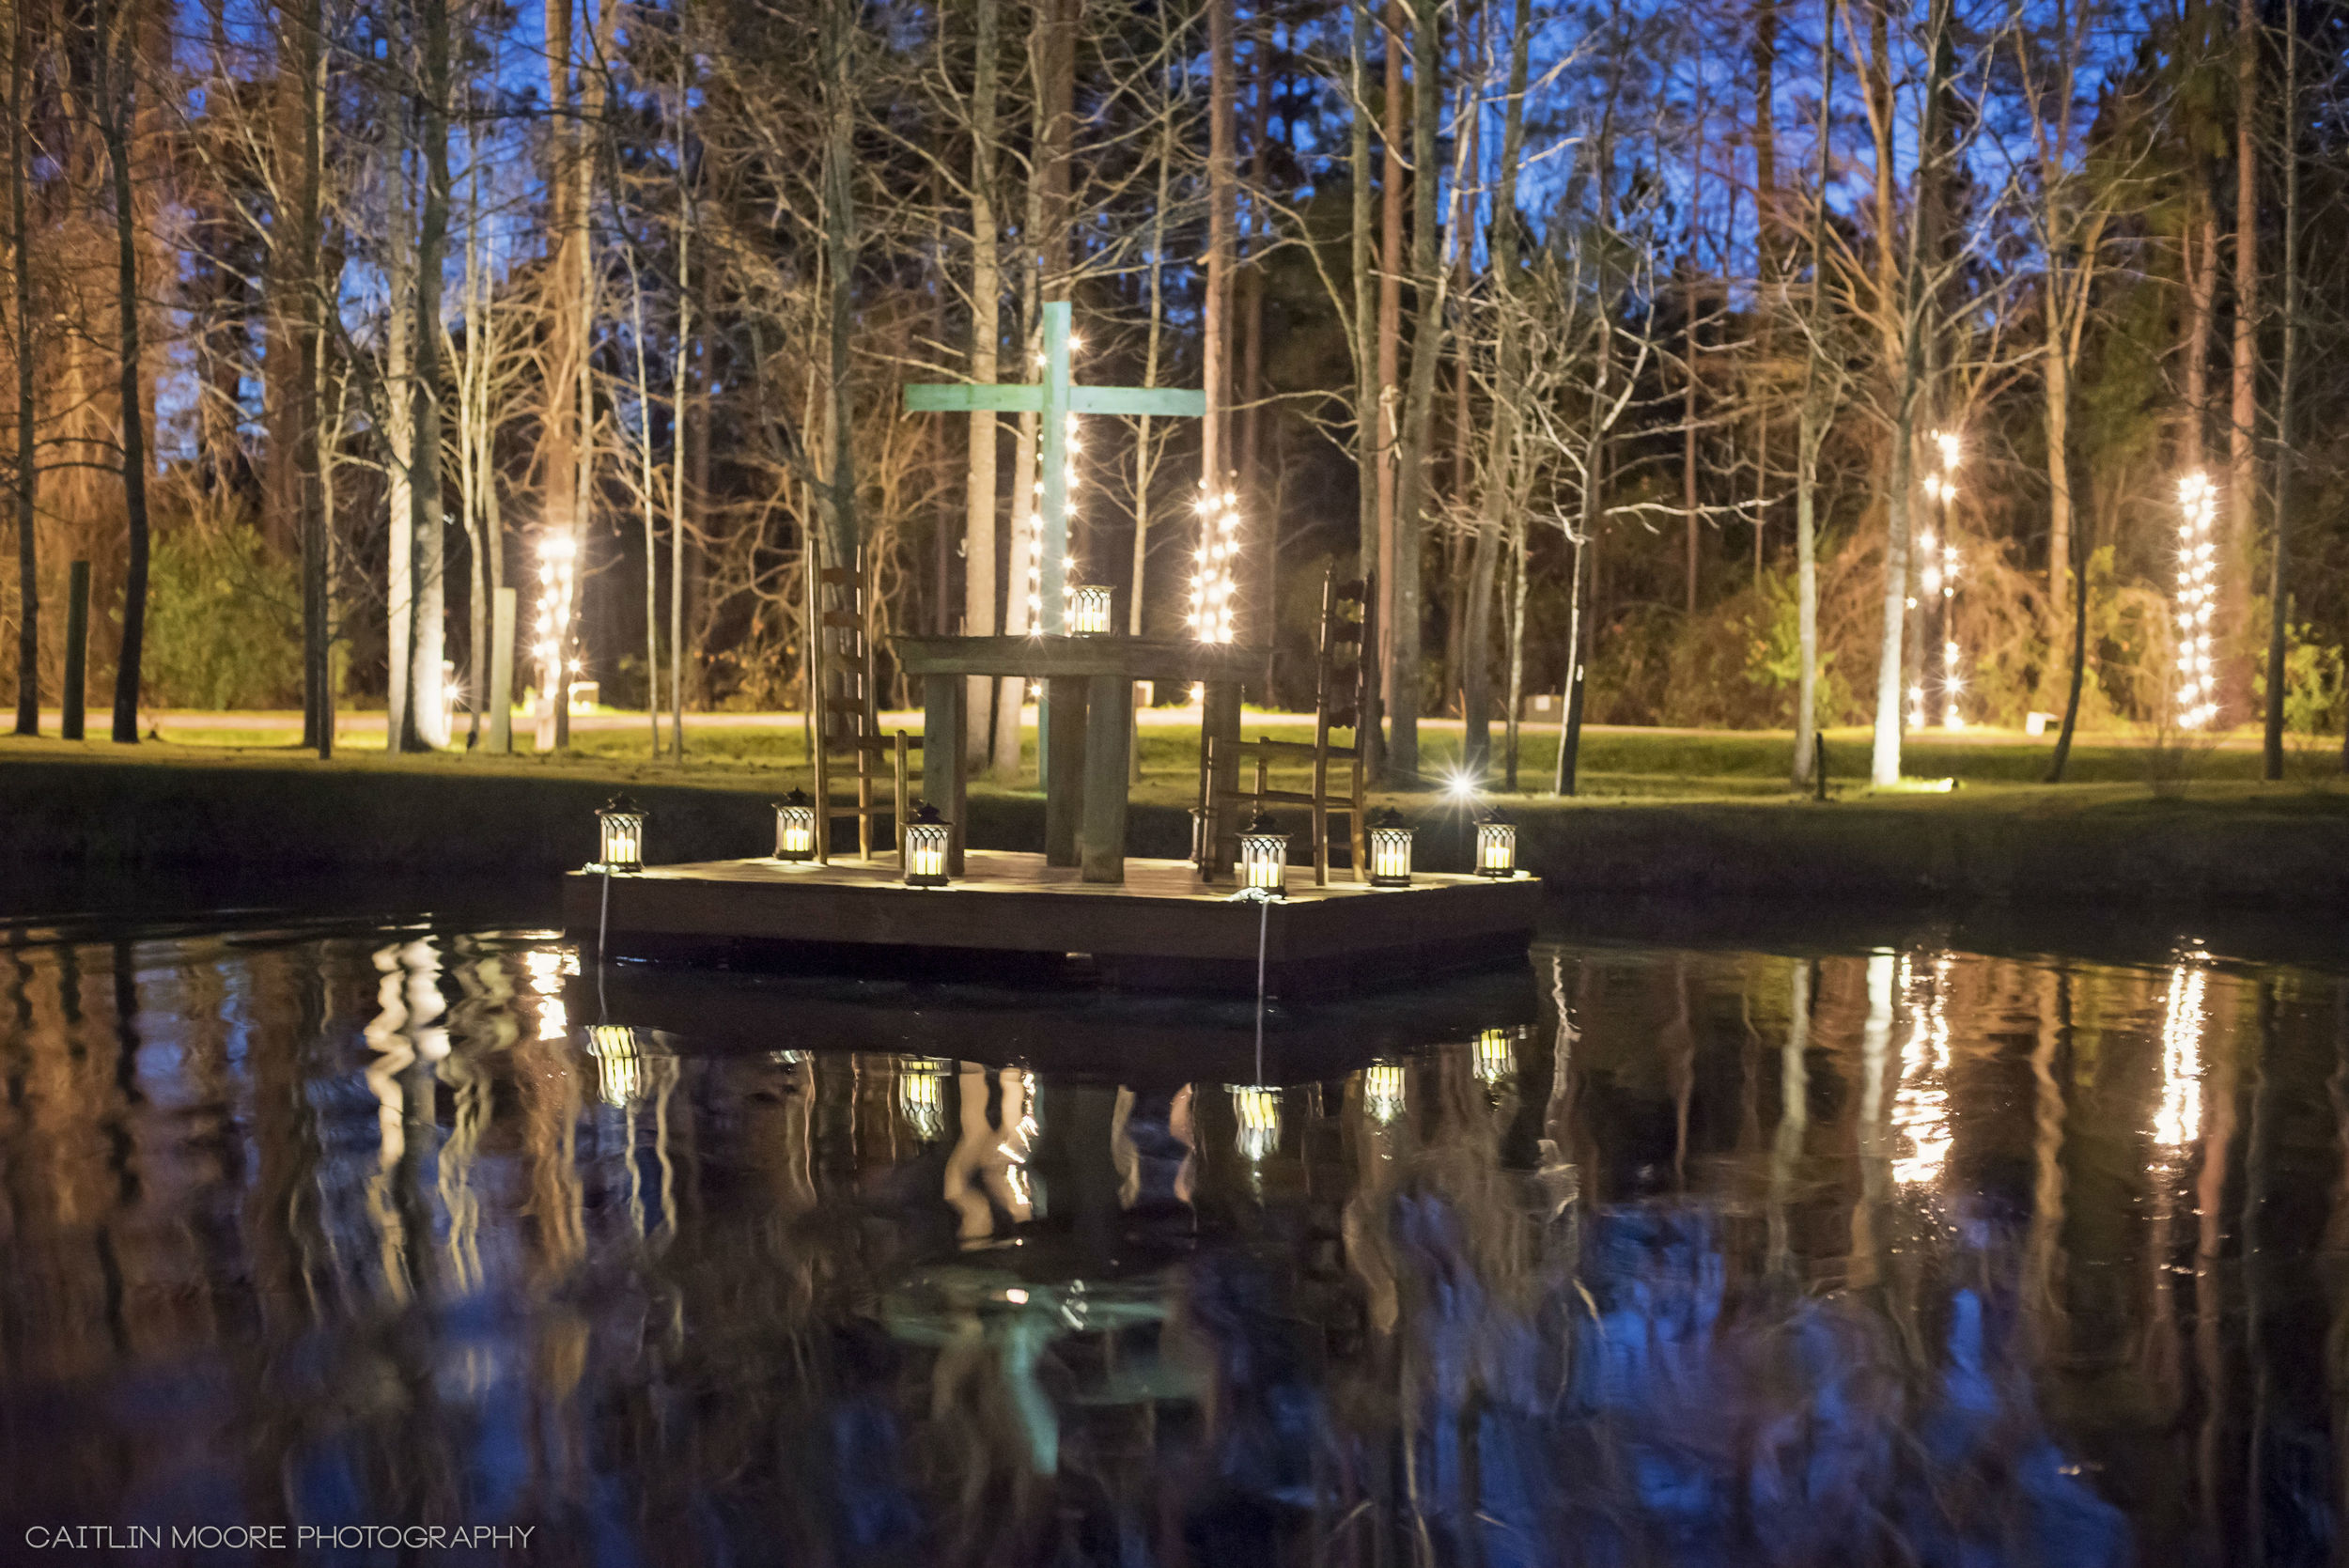 Private Dining At The Ceremony Pond at Hidden Acres | Caitlin Moore Photography